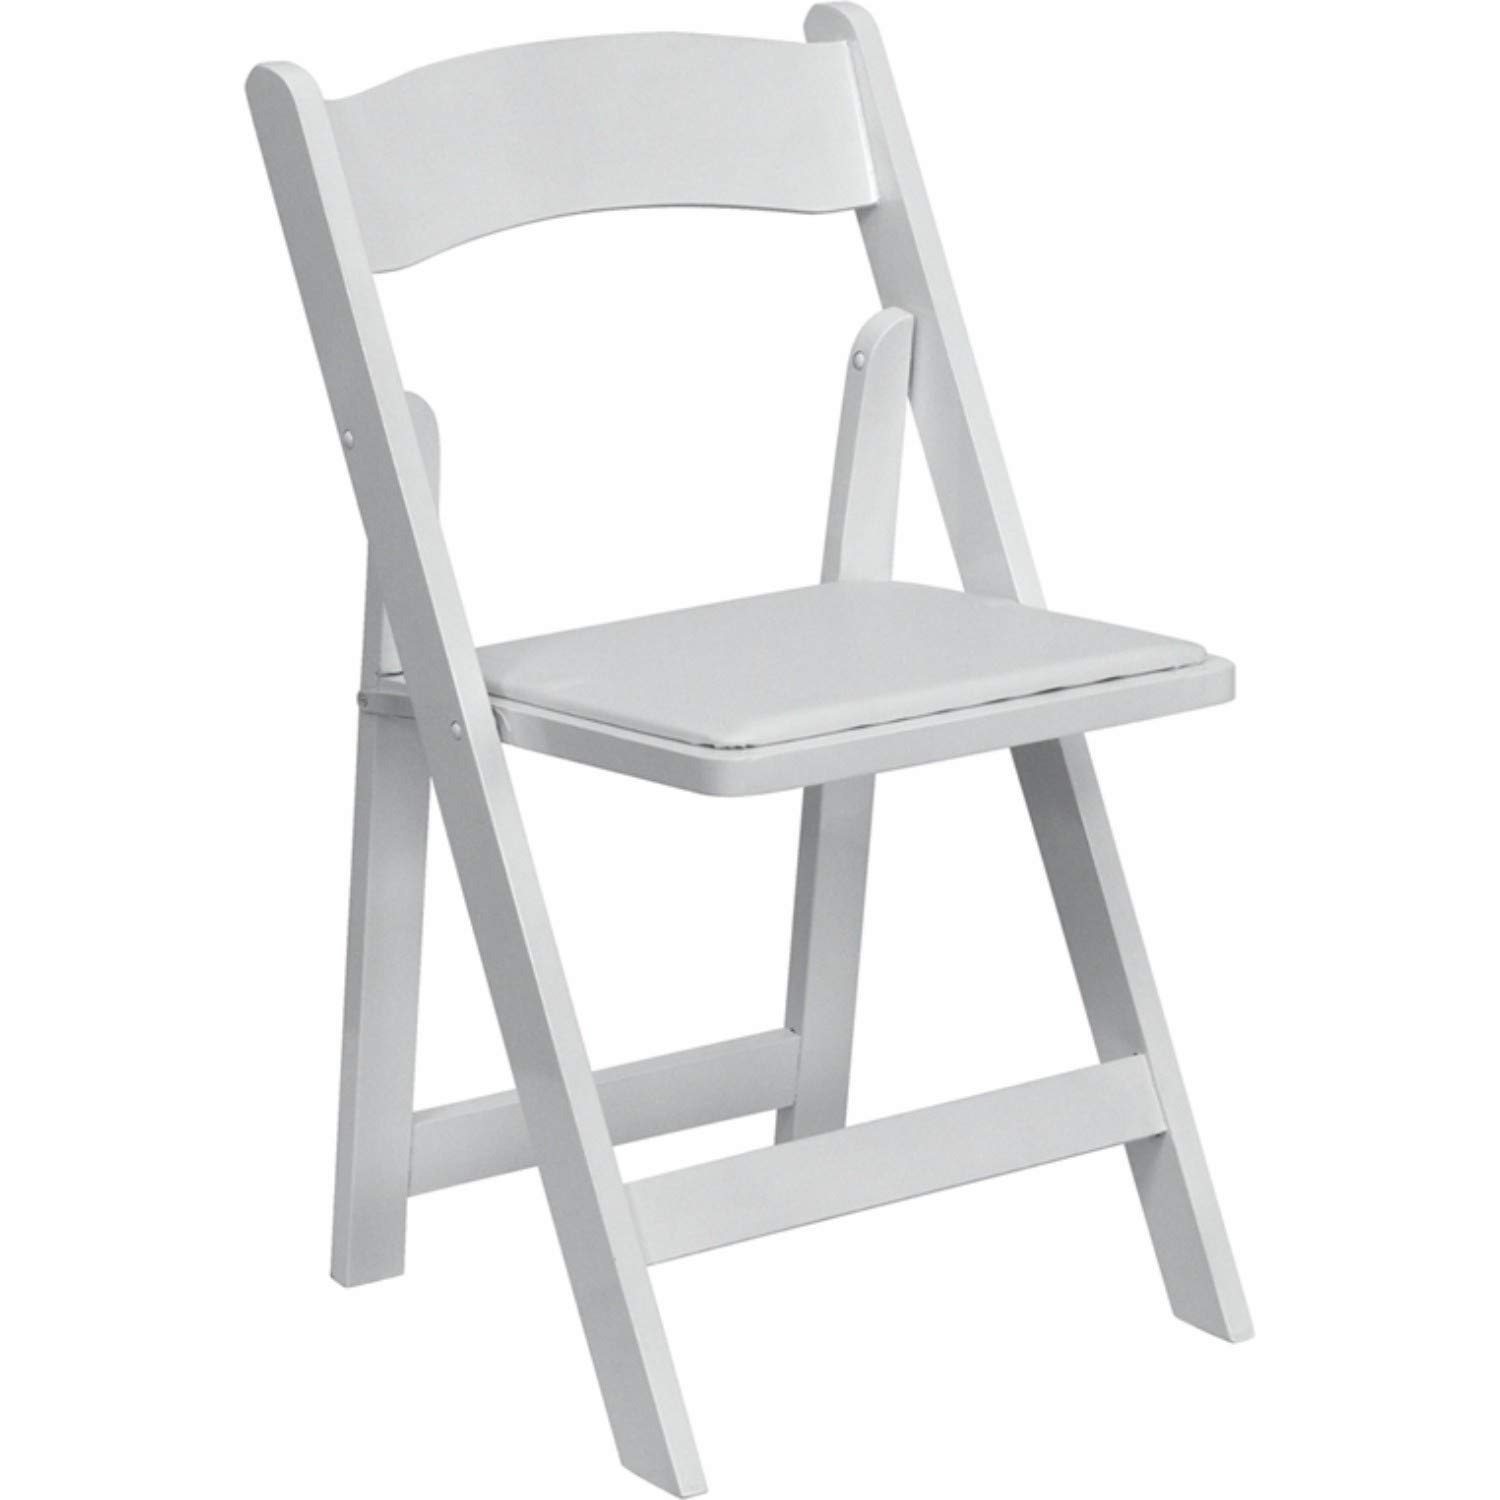 Offex OFX-89936-FF Wood Folding Chair with Vinyl Padded Seat - White by Offex (Image #1)